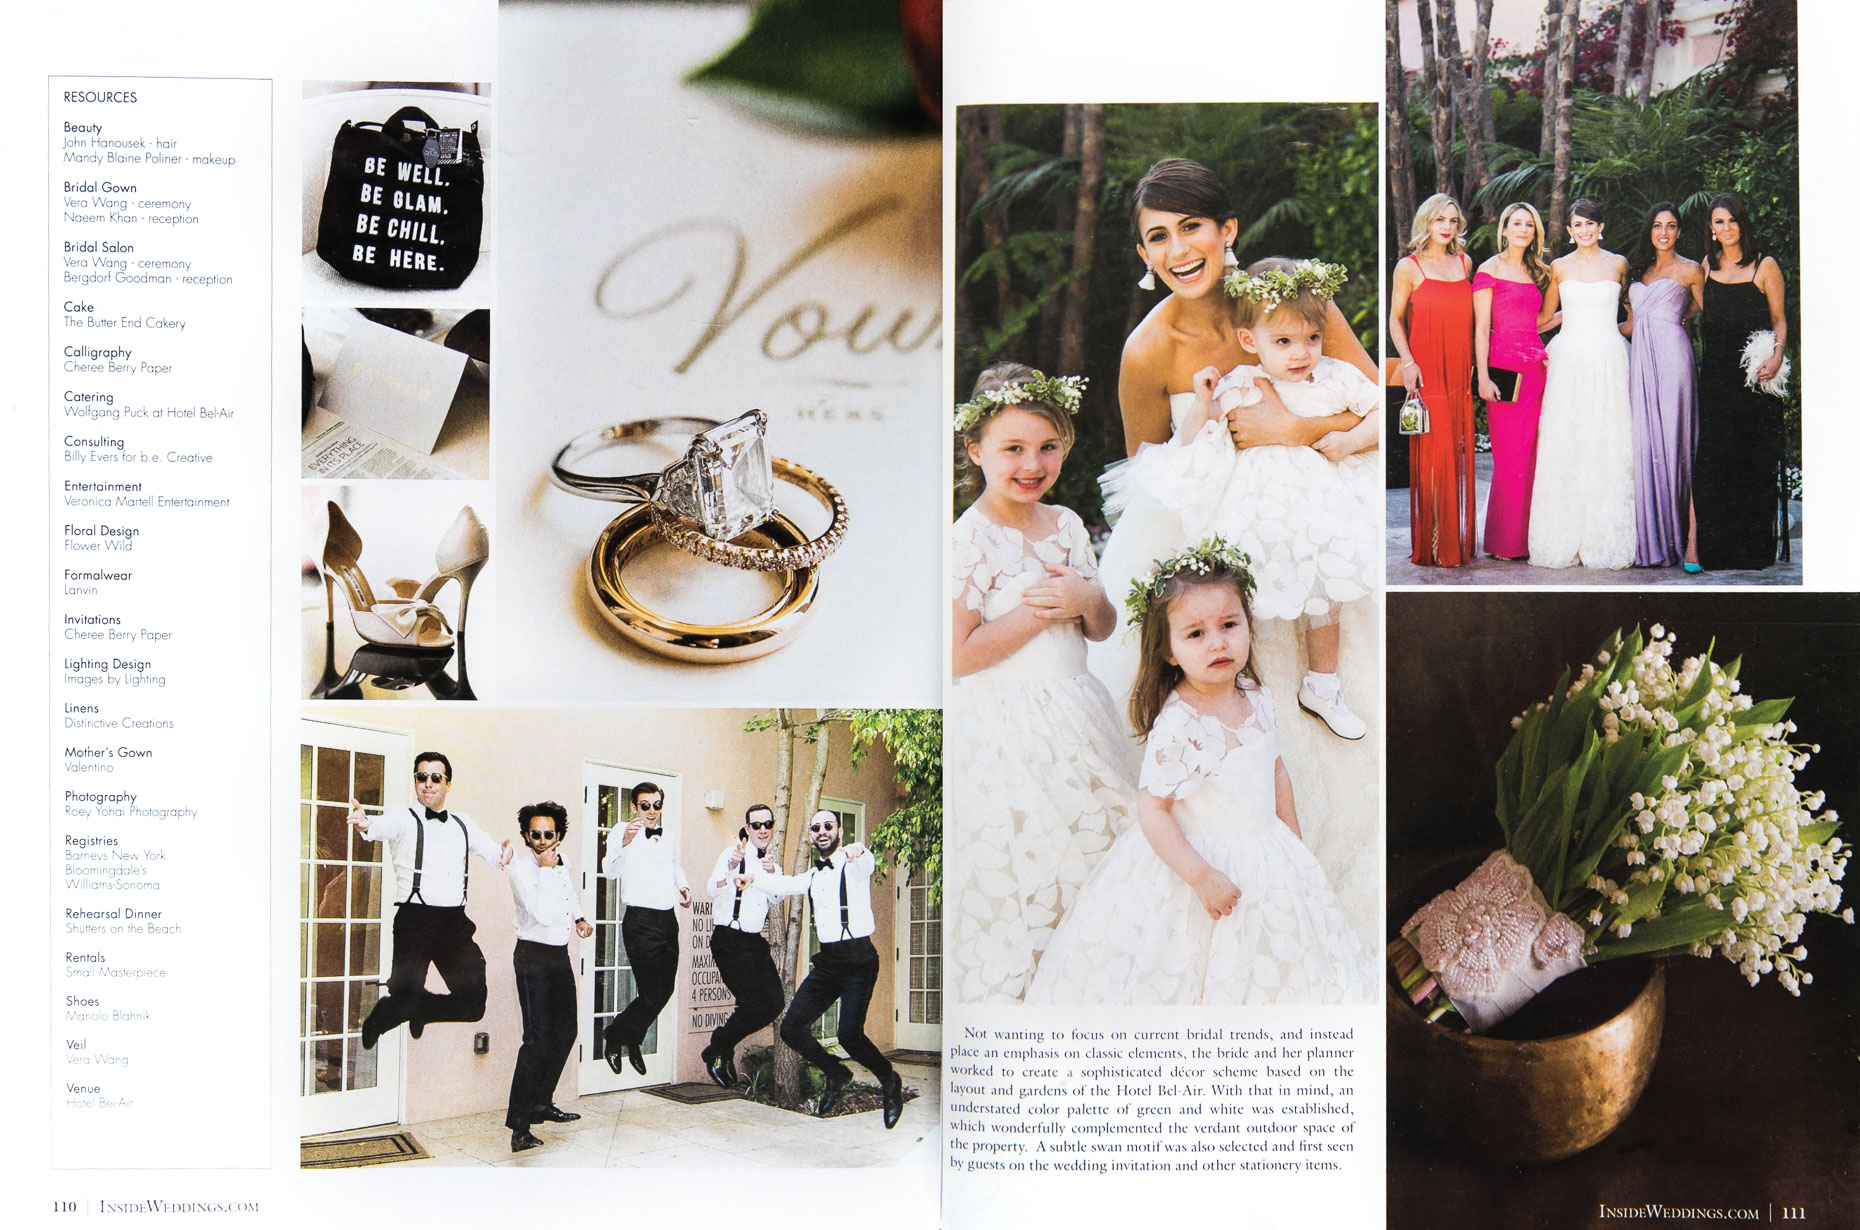 013_insideweddings_spread2_spring2016